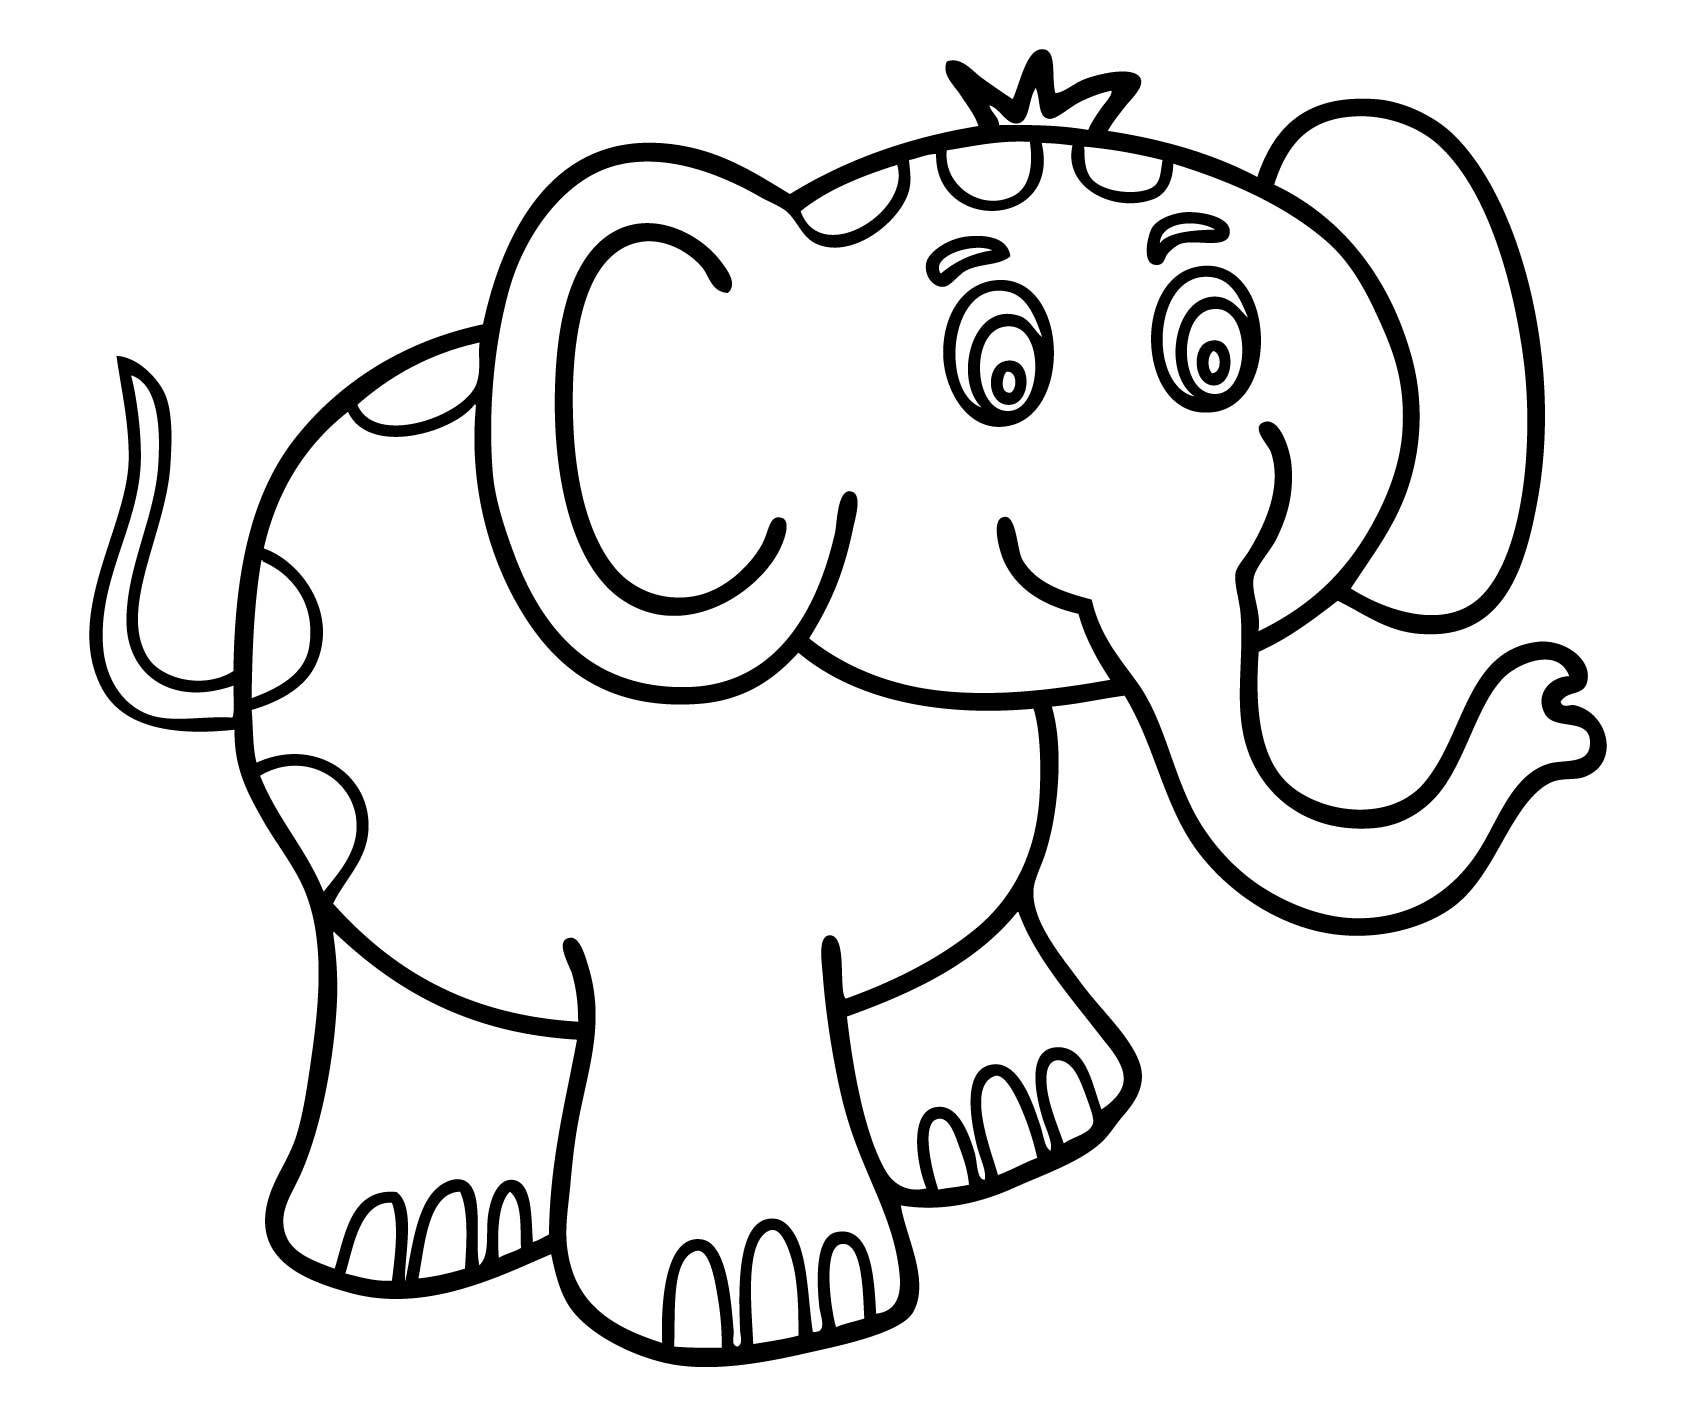 Easy coloring pages for toddlers - A Coloring Pages For Toddlers 3 Fish Colouring Pages For Toddlers